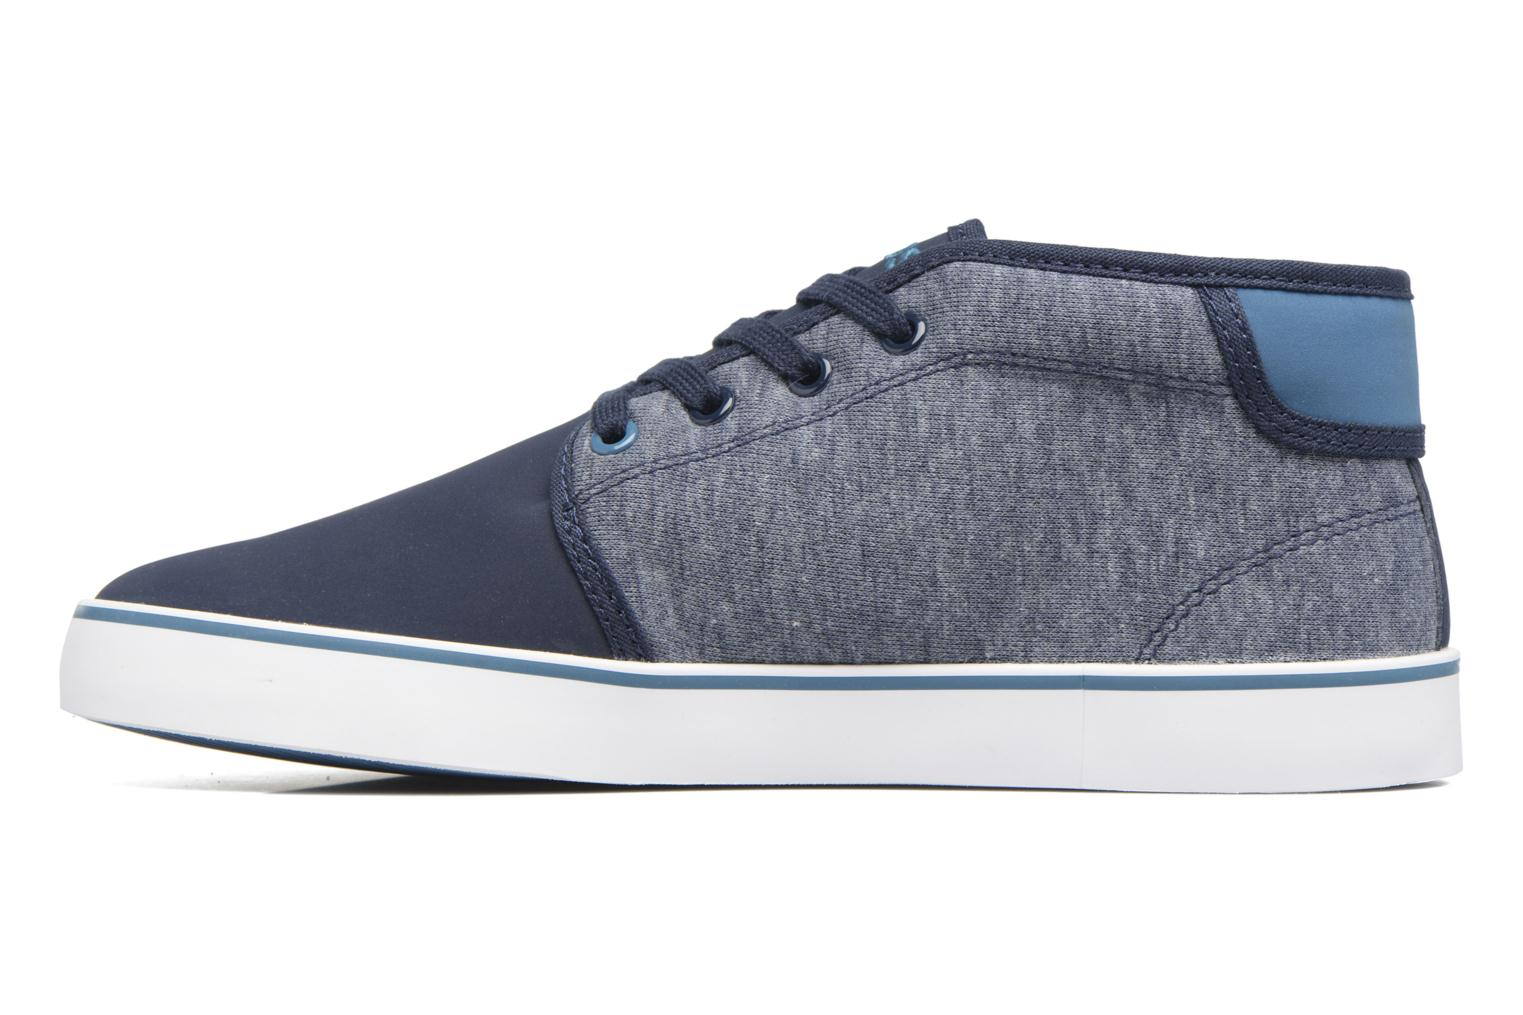 Ampthill 317 1 Lacoste Ampthill 1 Lacoste 317